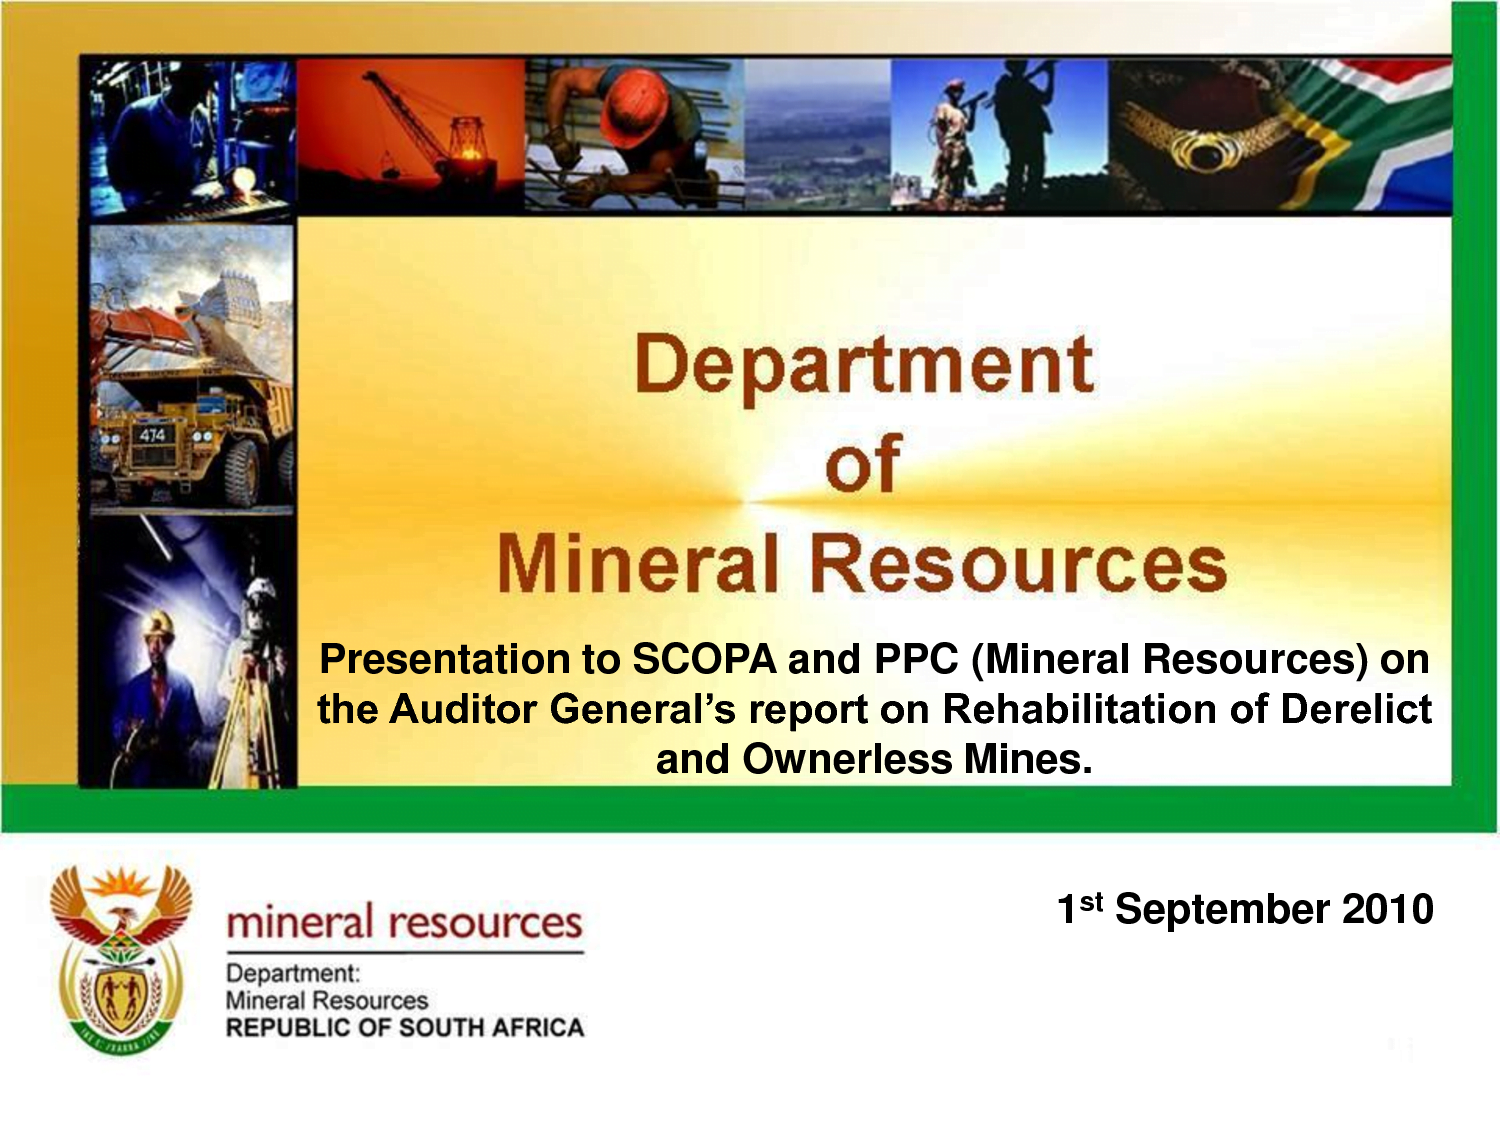 DEPARTMENT-OF-ENERGY-MINERAL-RESOURCES-JOHANNEBUR